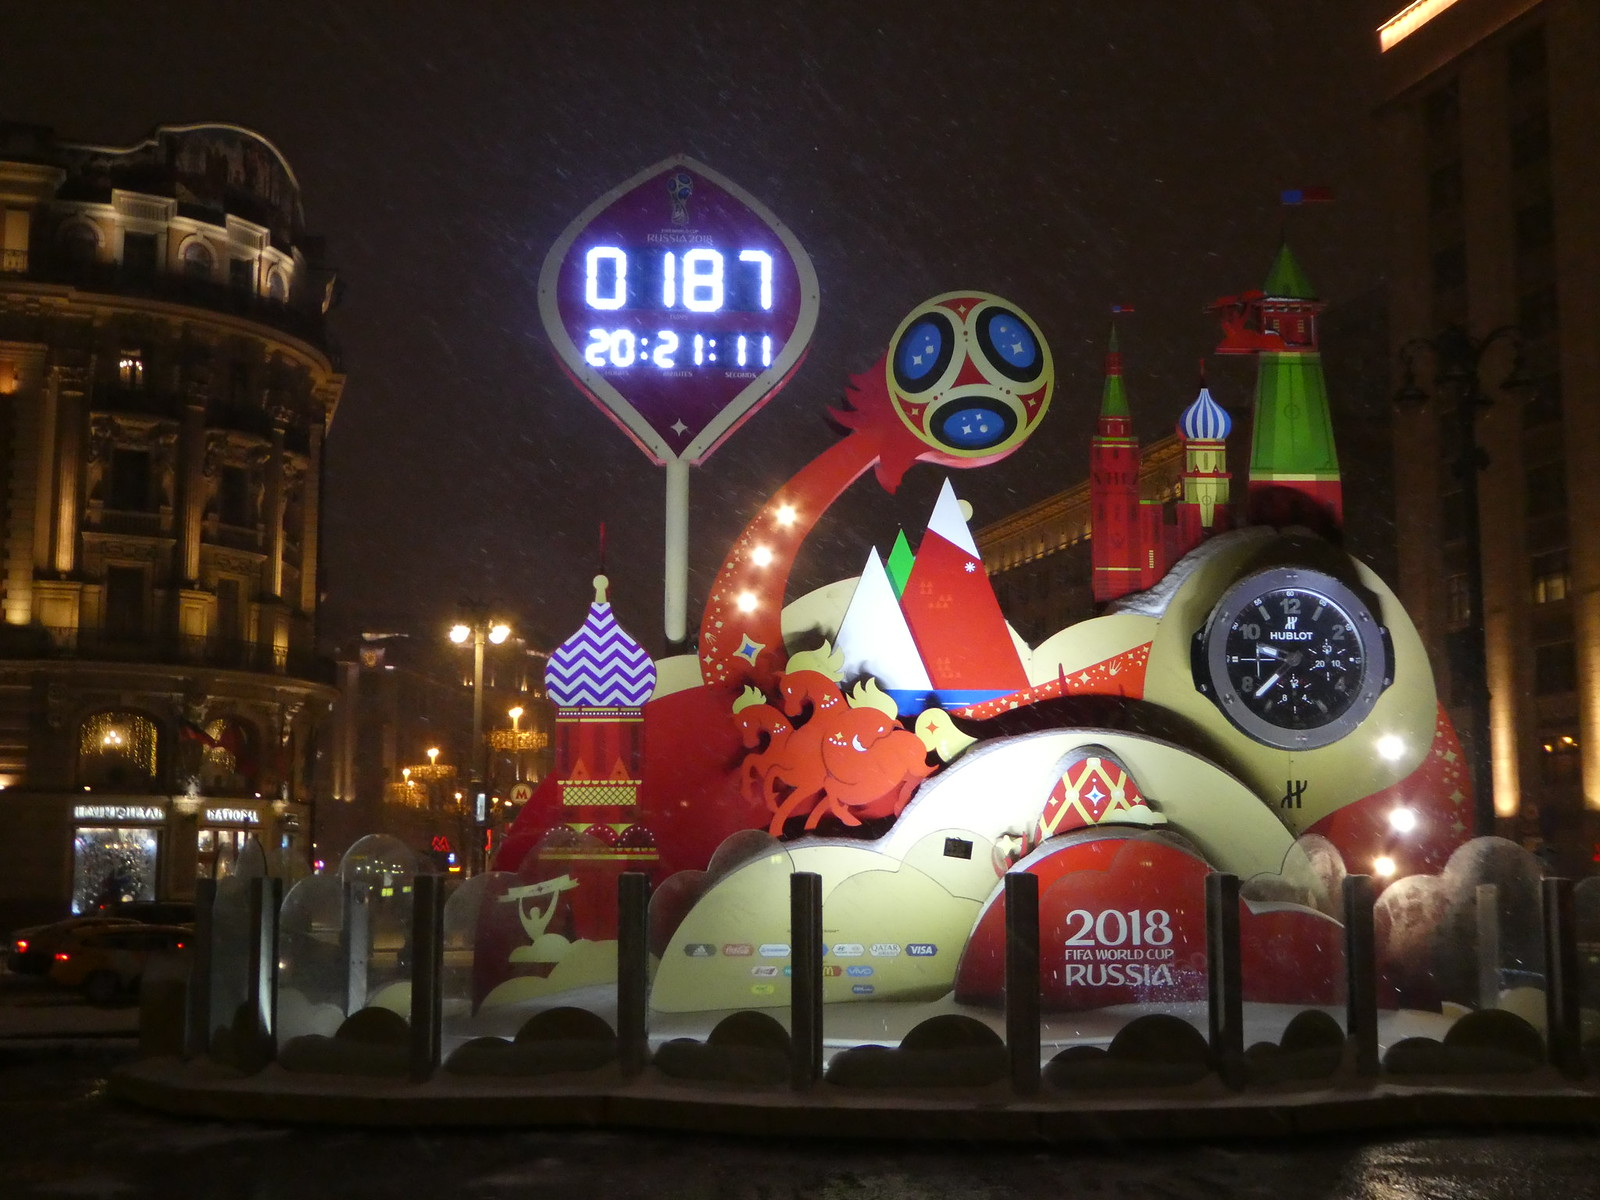 The countdown clock for the 2018 FIFA World Cup, Red Square, Moscow